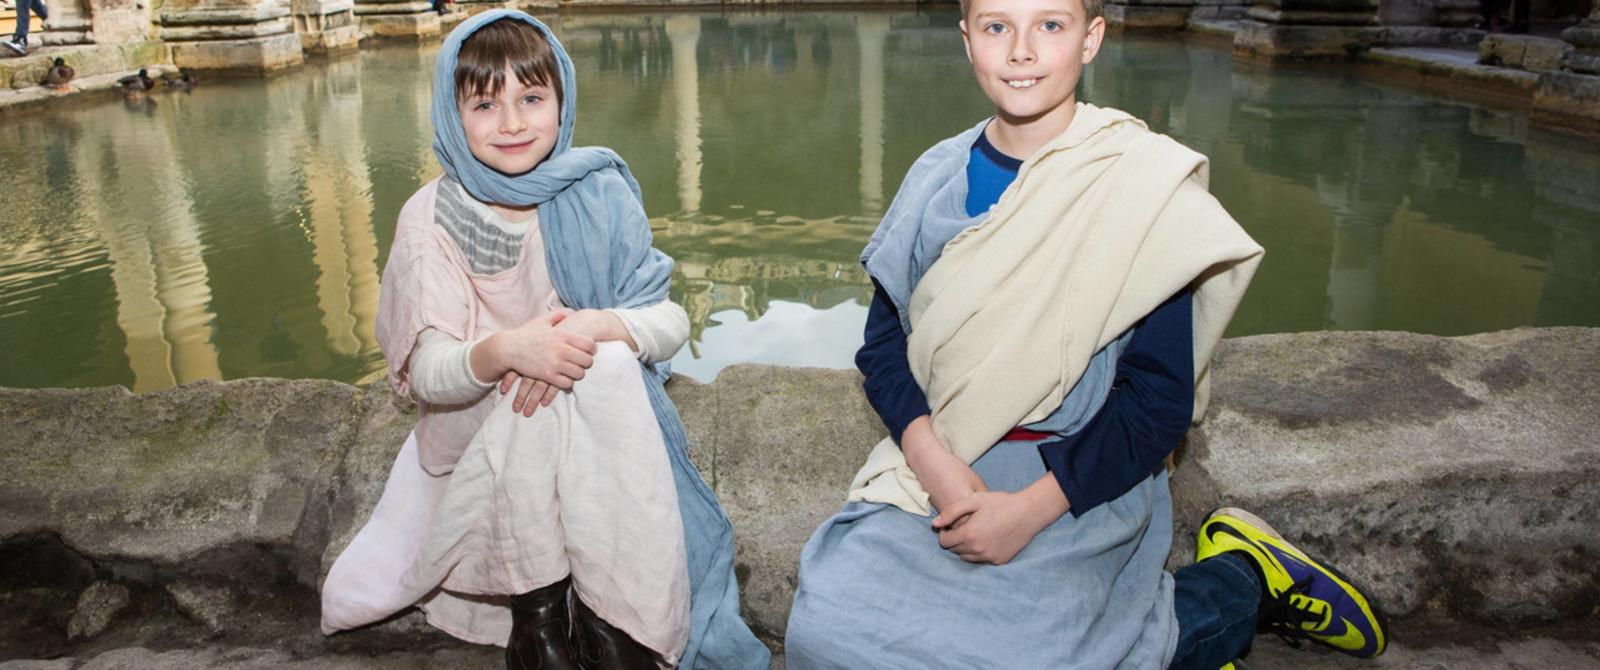 Image: children dressed up at the Roman Baths